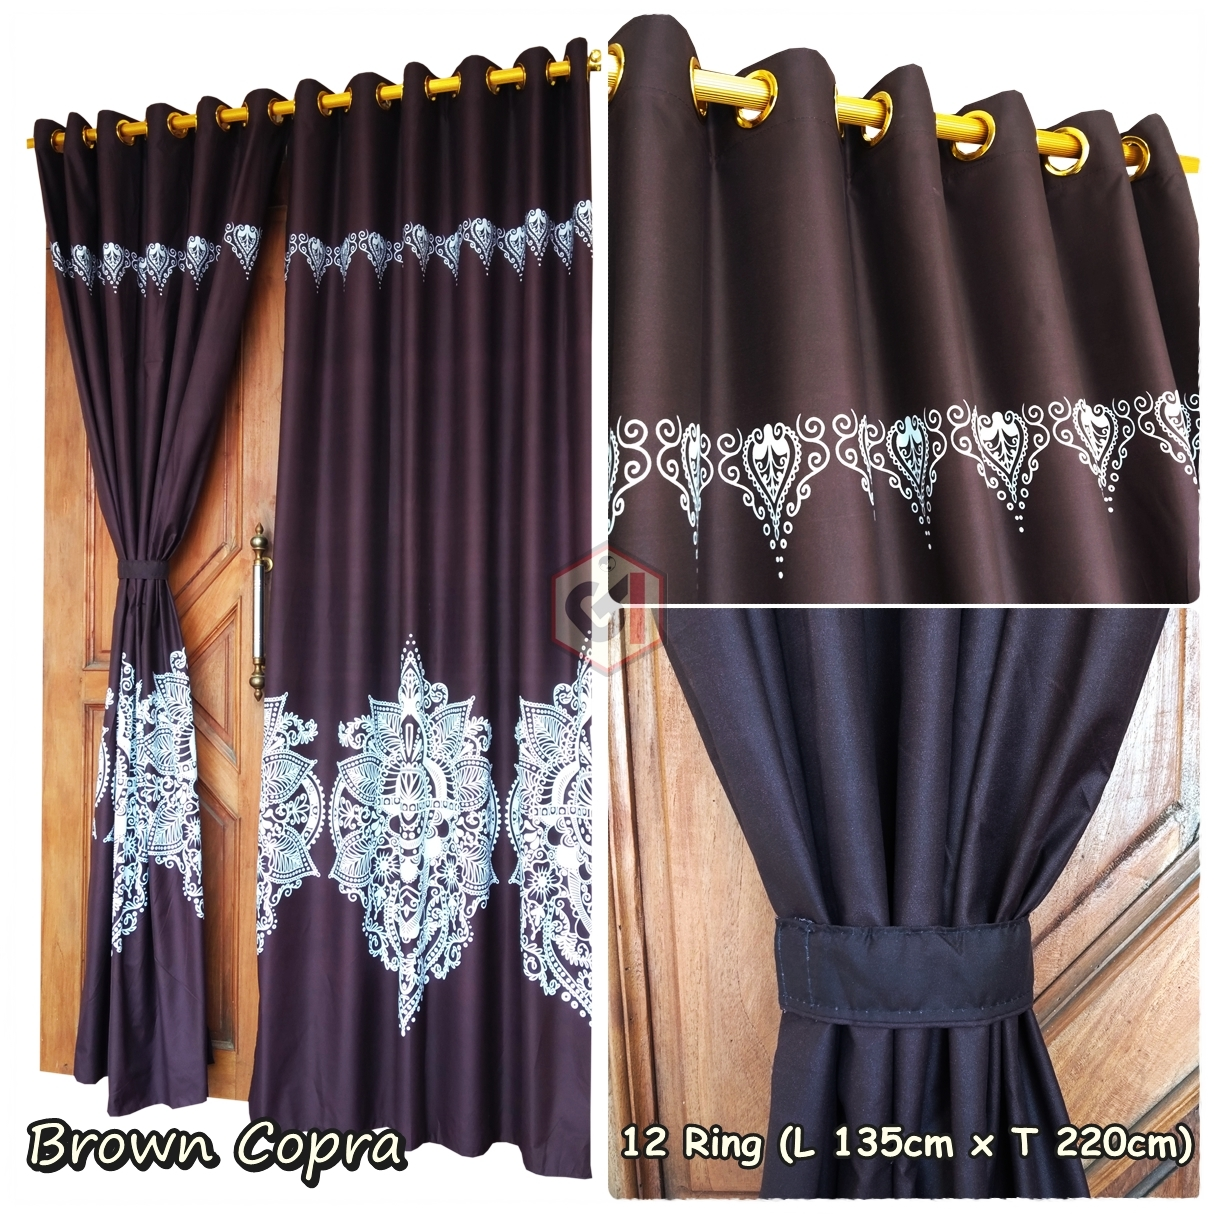 Gorden Pintu Rumah Motif Brown Copra Model Smokring 12 Ring Ukuran Panjang Murah Elegan